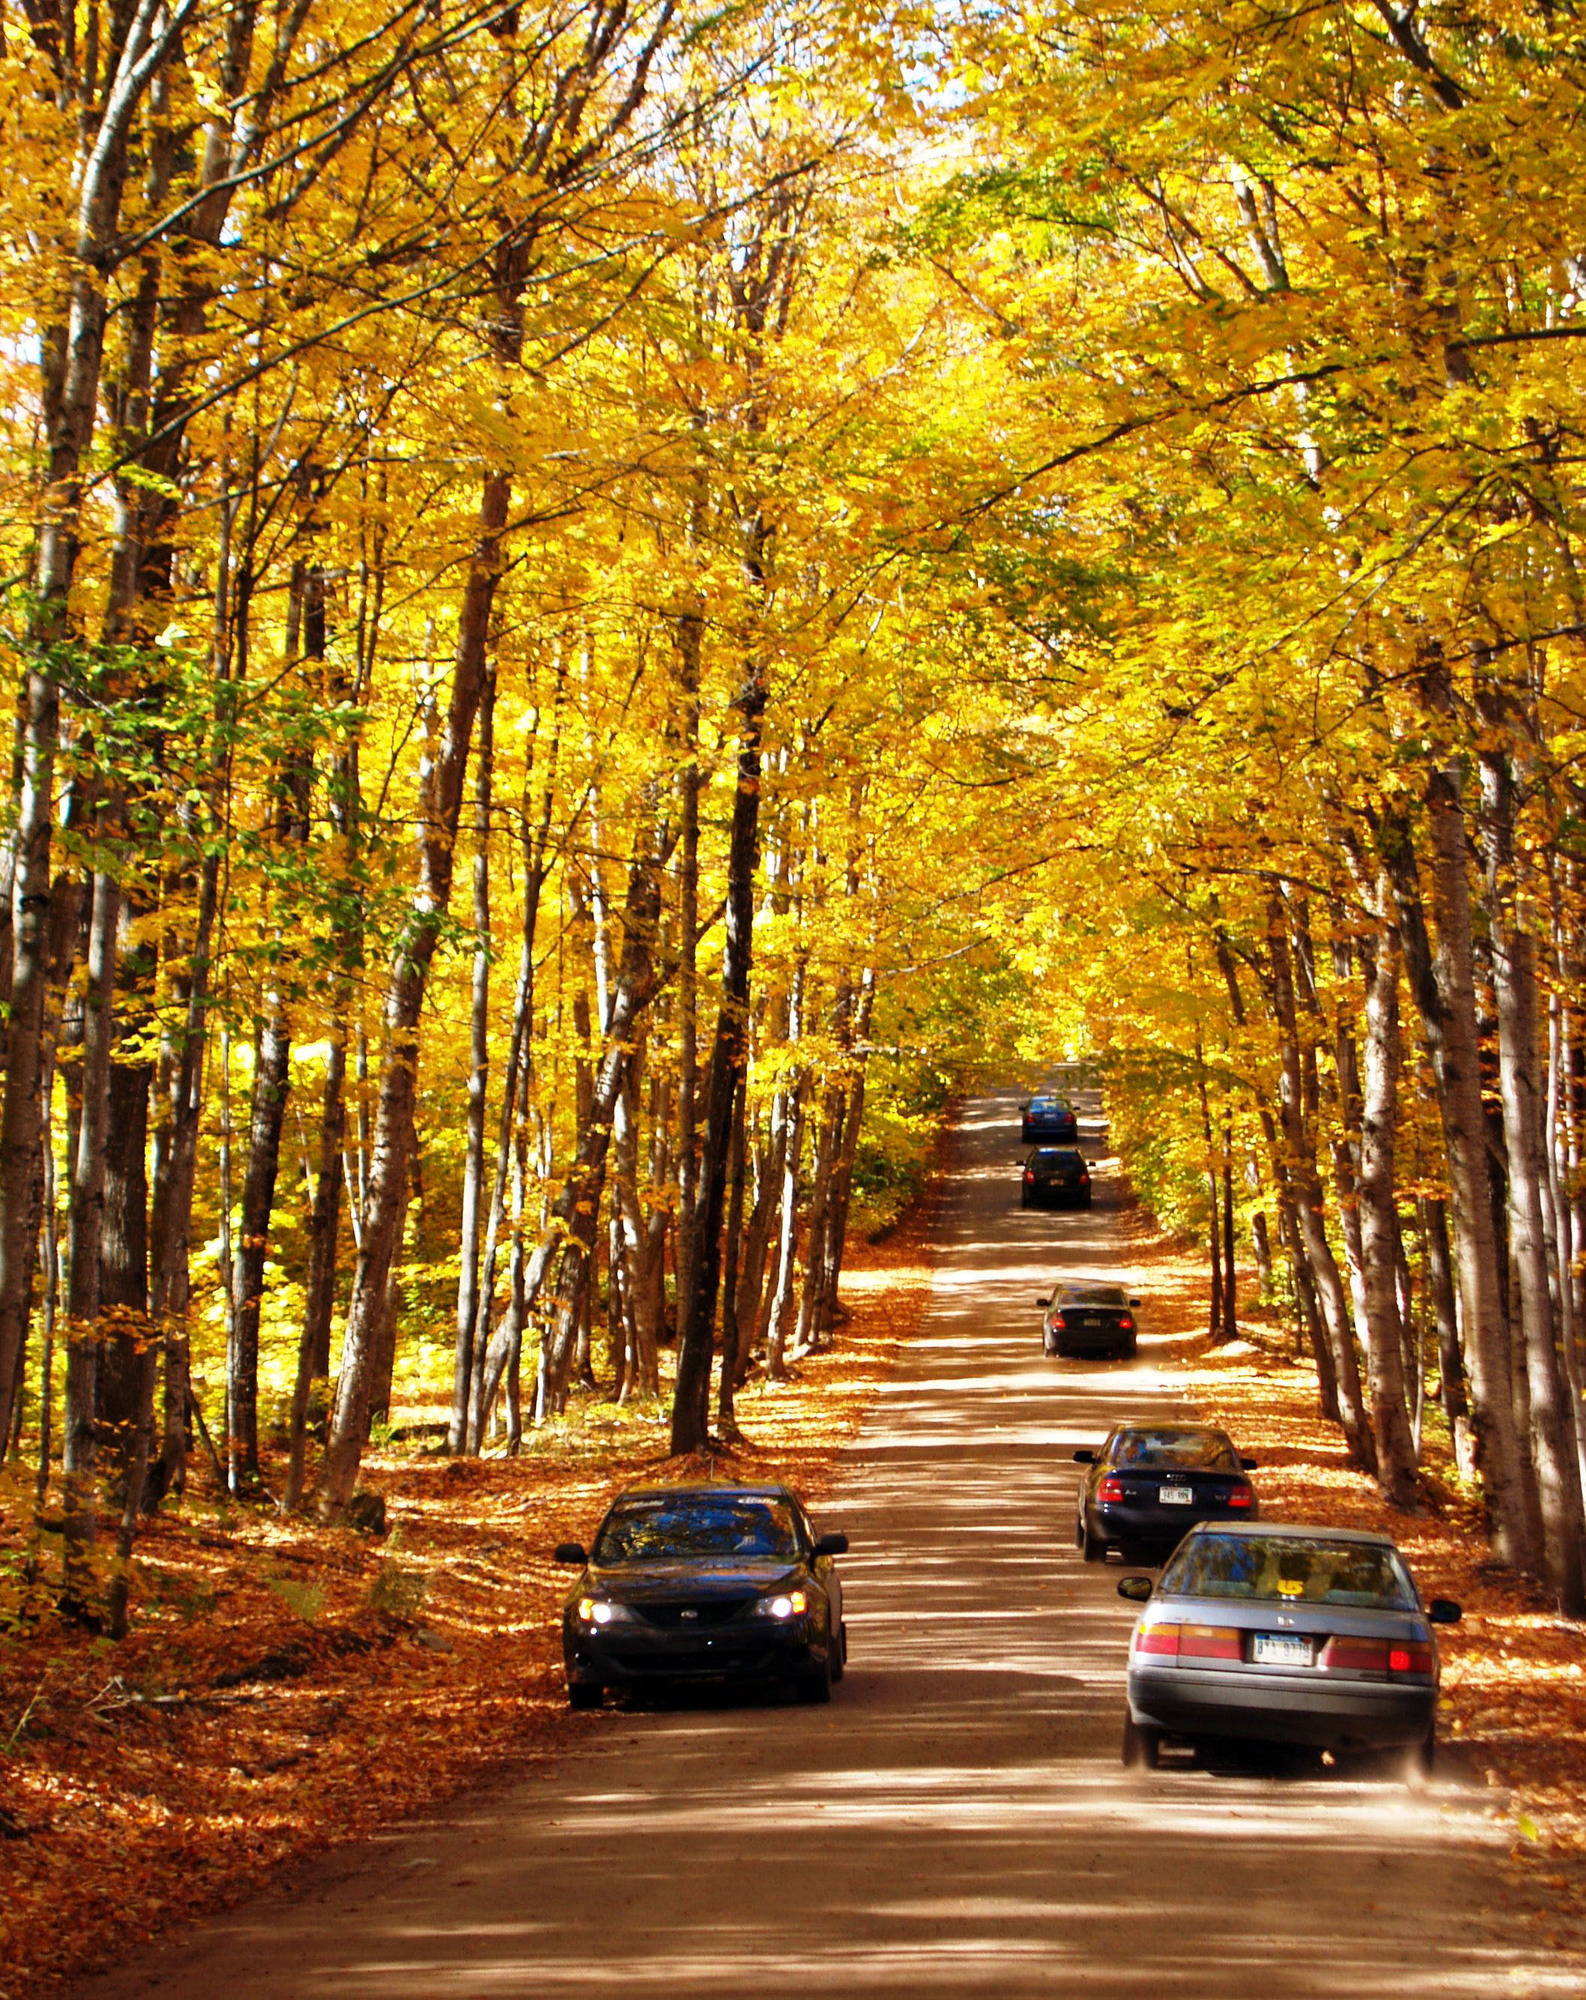 Backwoods roads can get busy during fall color season, like this section of County Road 510 near Big Bay in Marquette County.